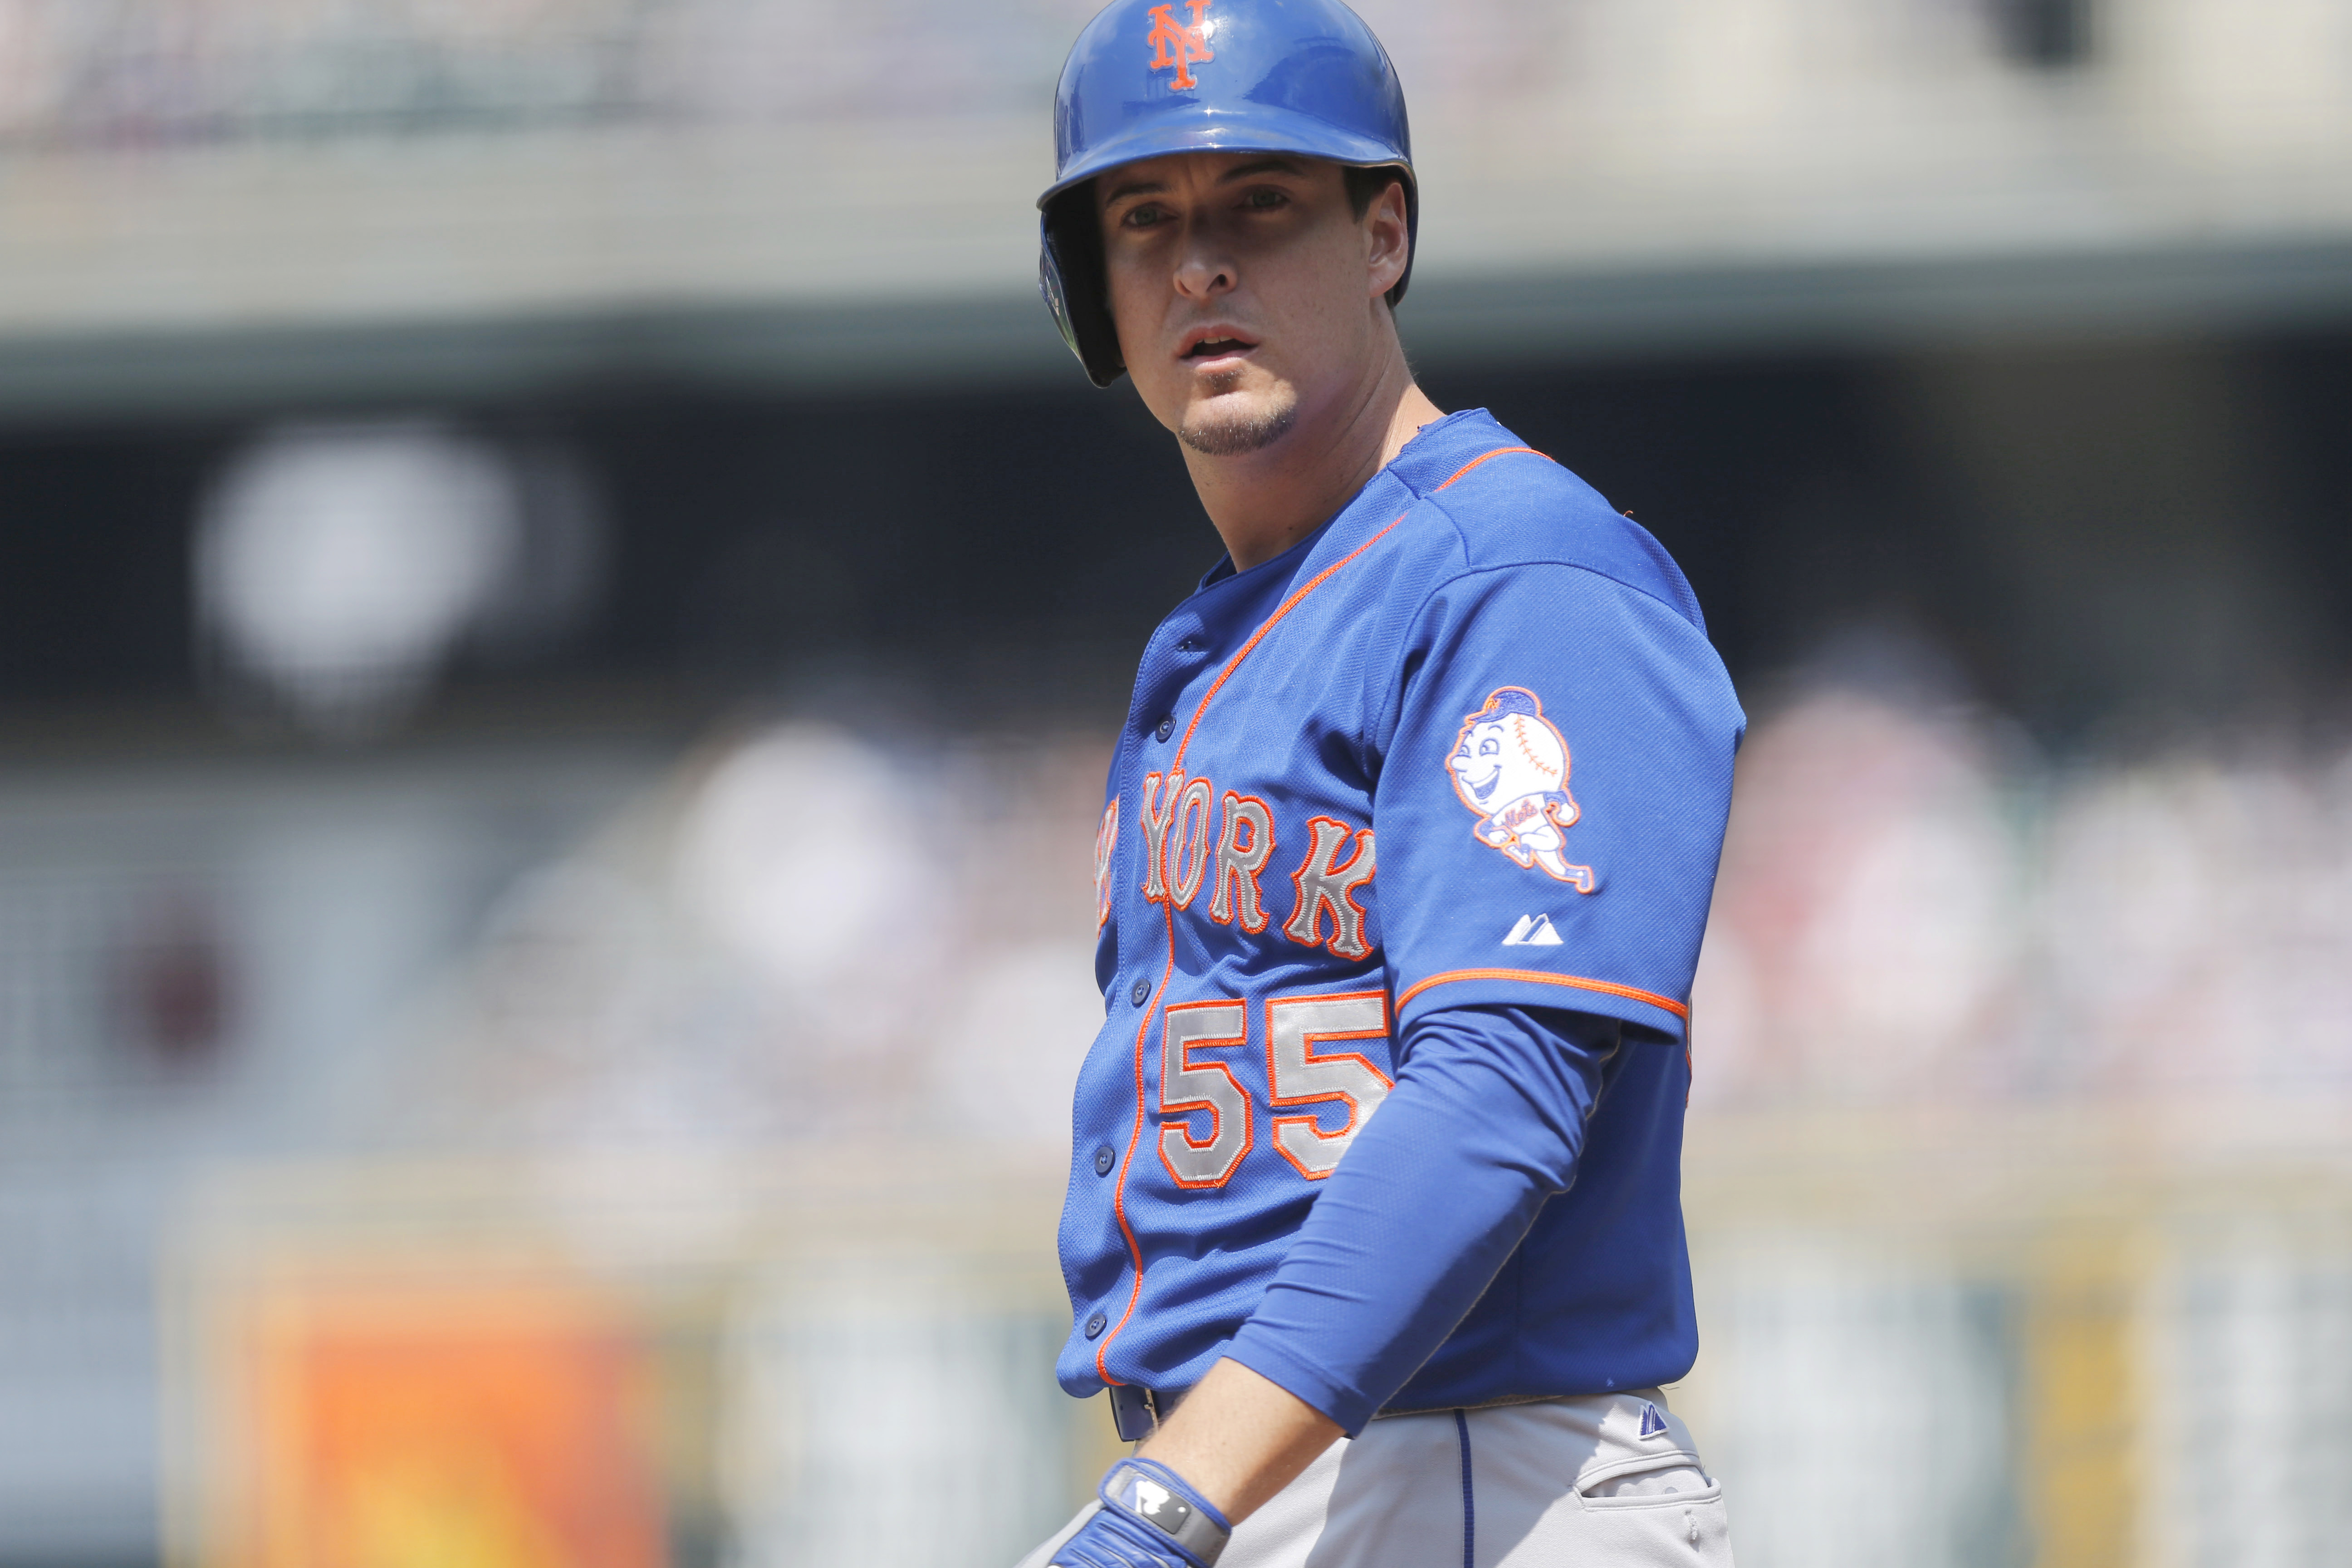 This Aug. 23, 2015 photo shows New York Mets second baseman Kelly Johnson (55) in the first inning of a baseball game in Denver. A person familiar with the negotiations says infielder Kelly Johnson and the Atlanta Braves have agreed to a $2 million, one-y